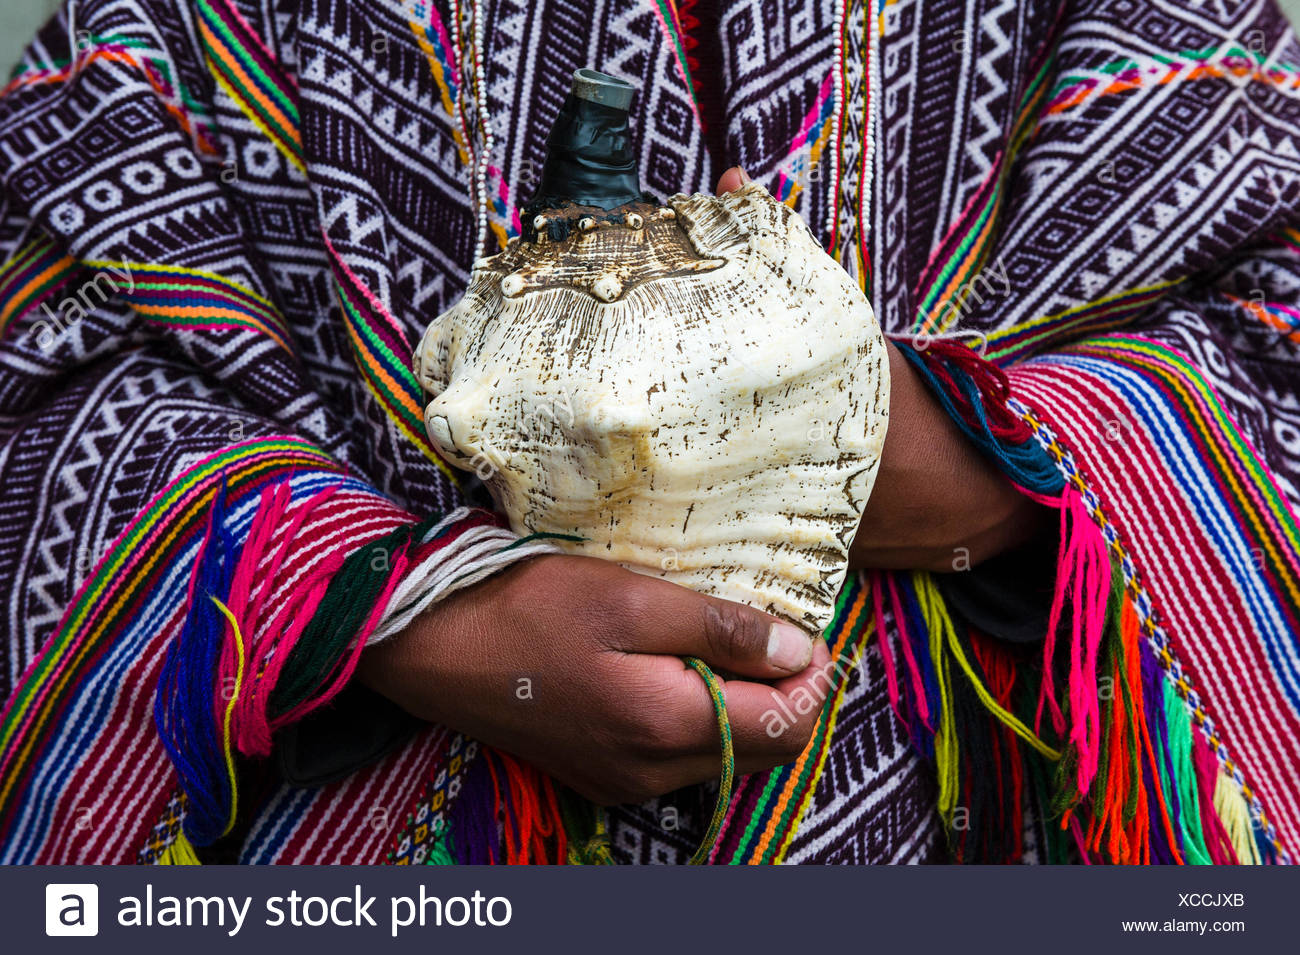 An Amaru man wearing a colourful handwoven poncho holding a shell horn. - Stock Image